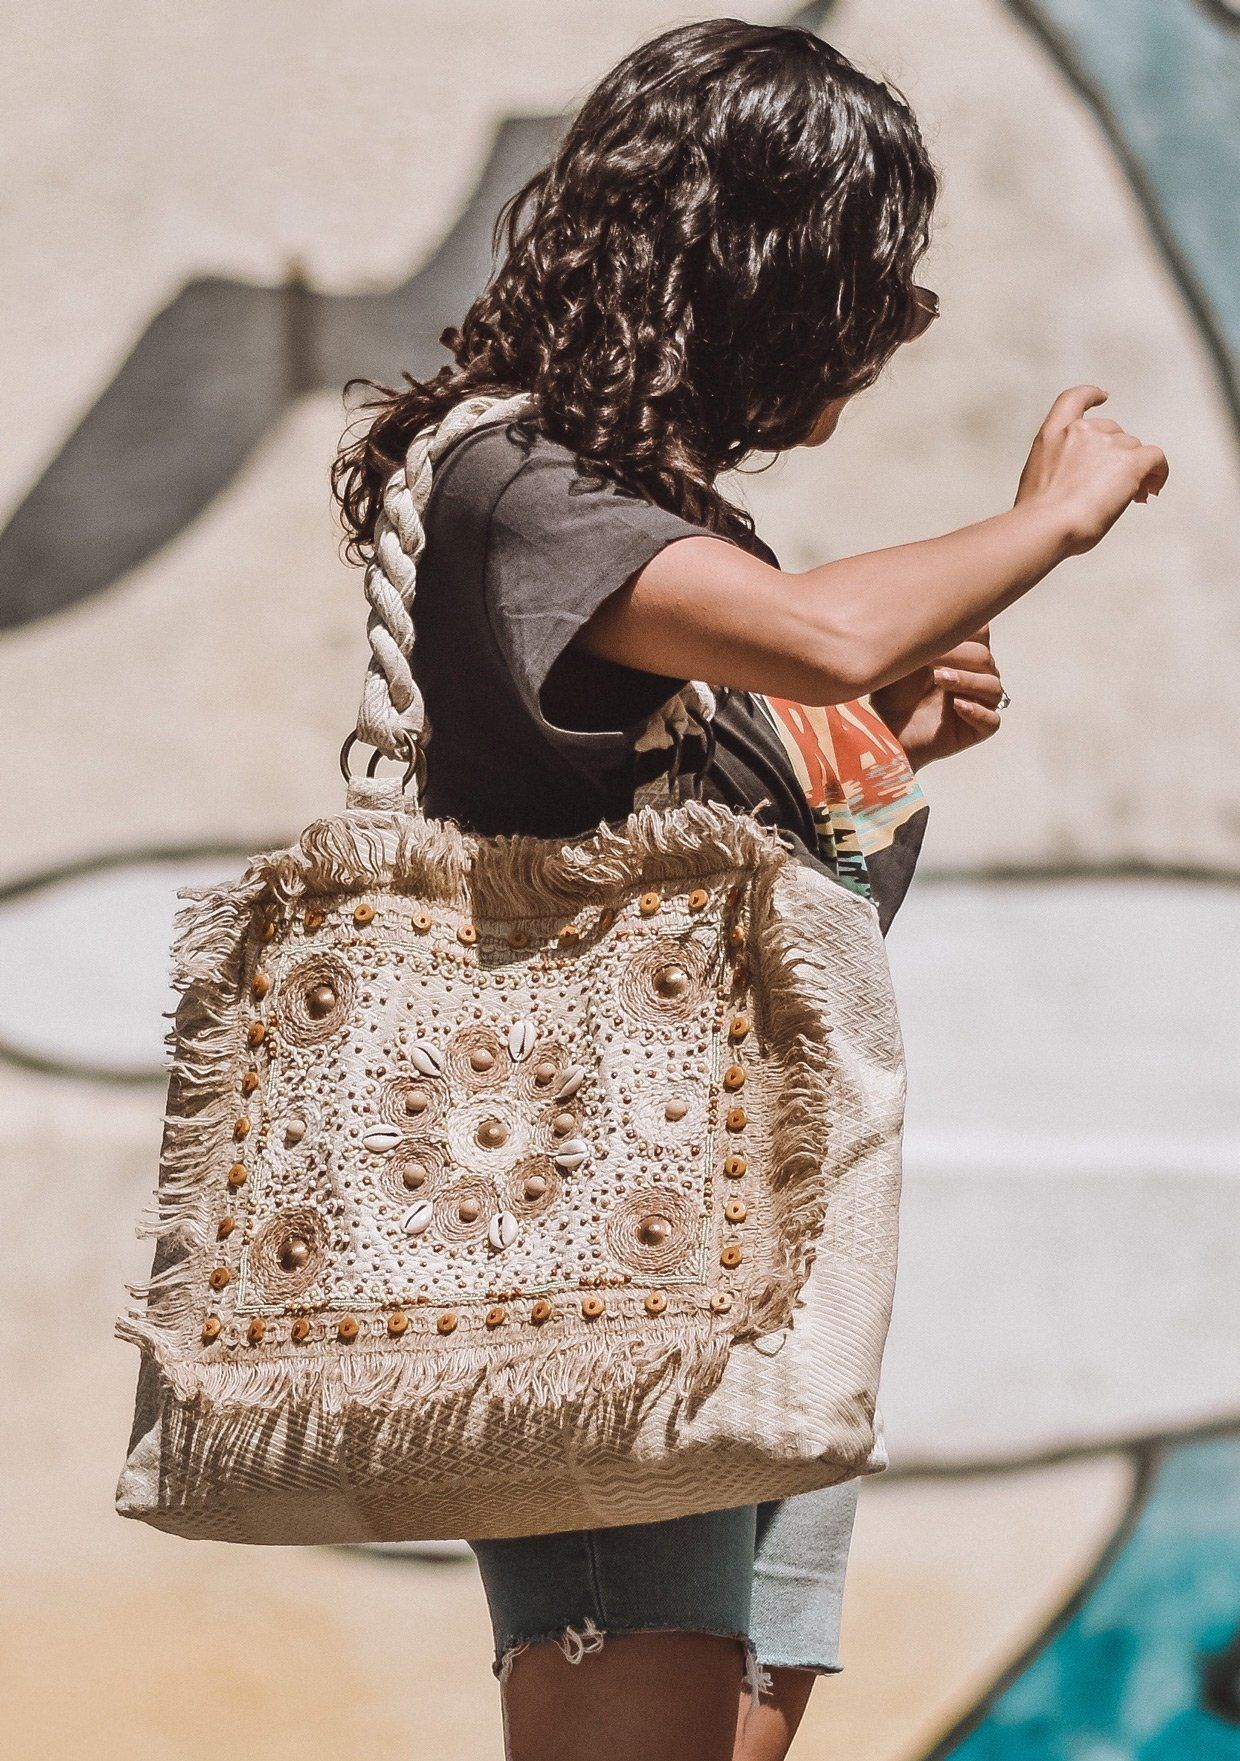 Vintage purse with cord. Handmade Details about  /Beaded handbags Festive embroidered bags